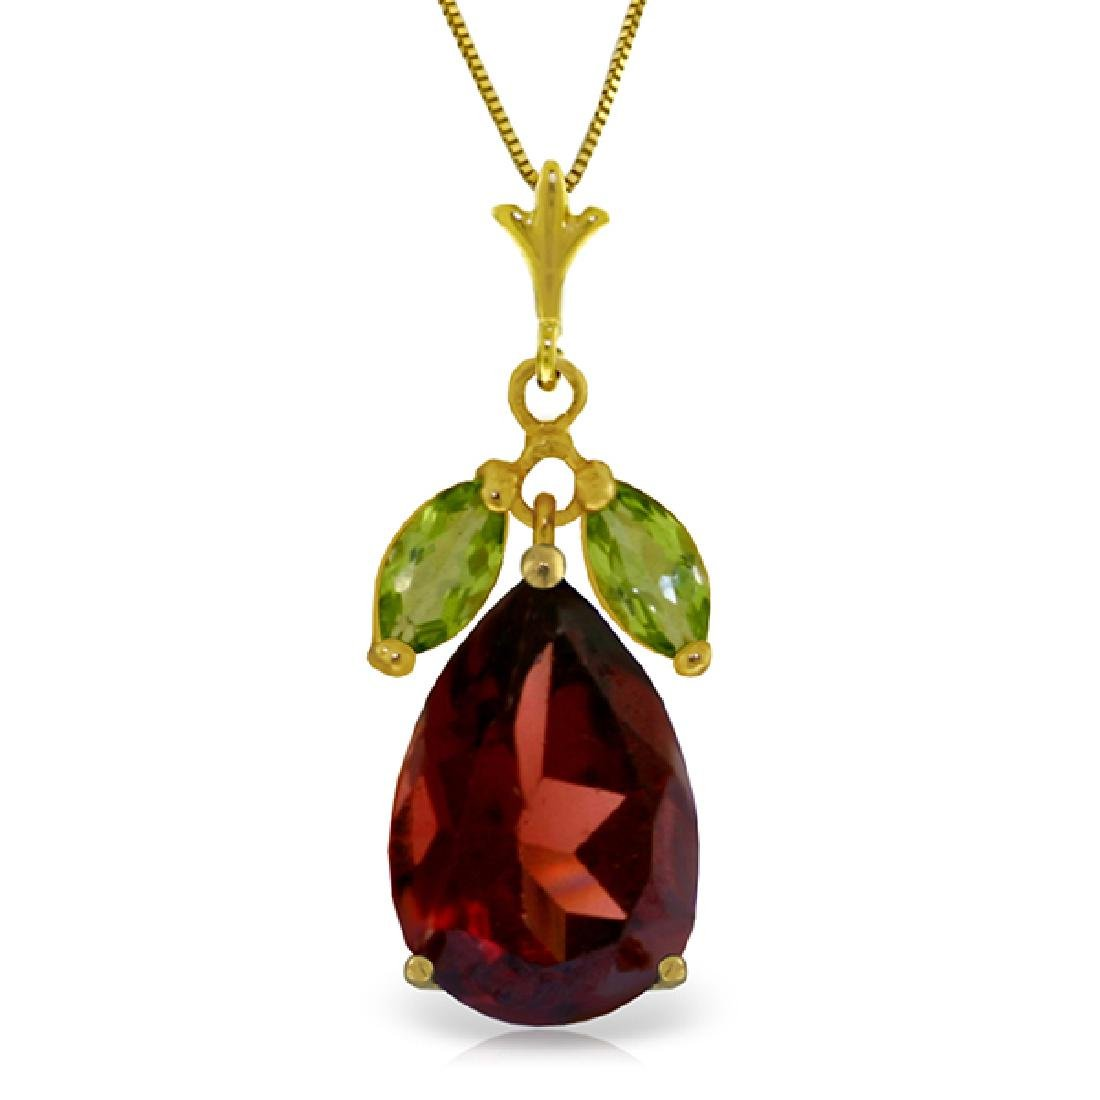 Genuine 6.5 ctw Garnet & Peridot Necklace Jewelry 14KT